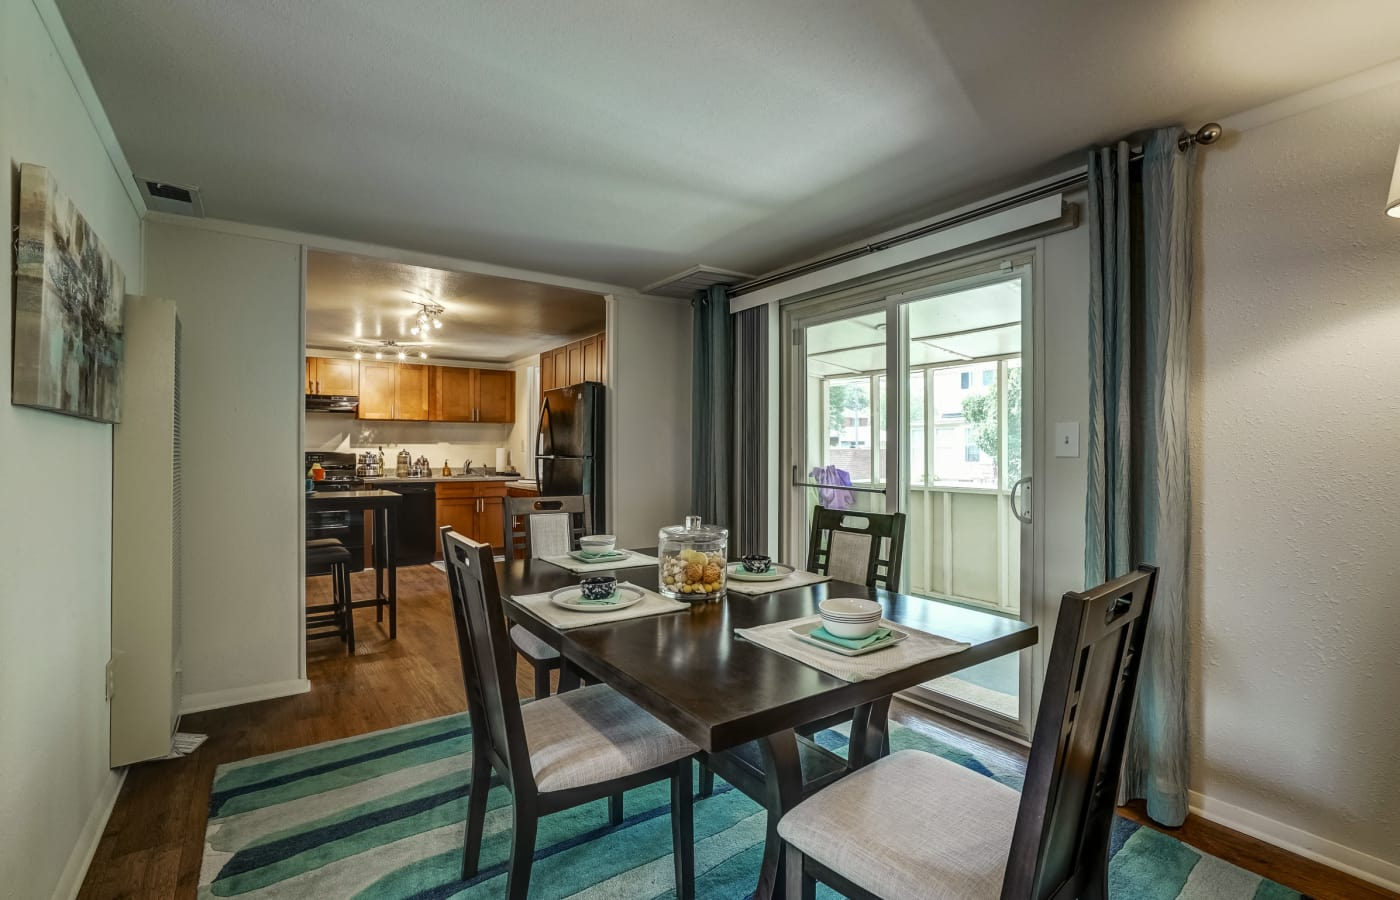 Dining area with kitchen in background in model townhome at Avalon Townhomes in Hampton, VA